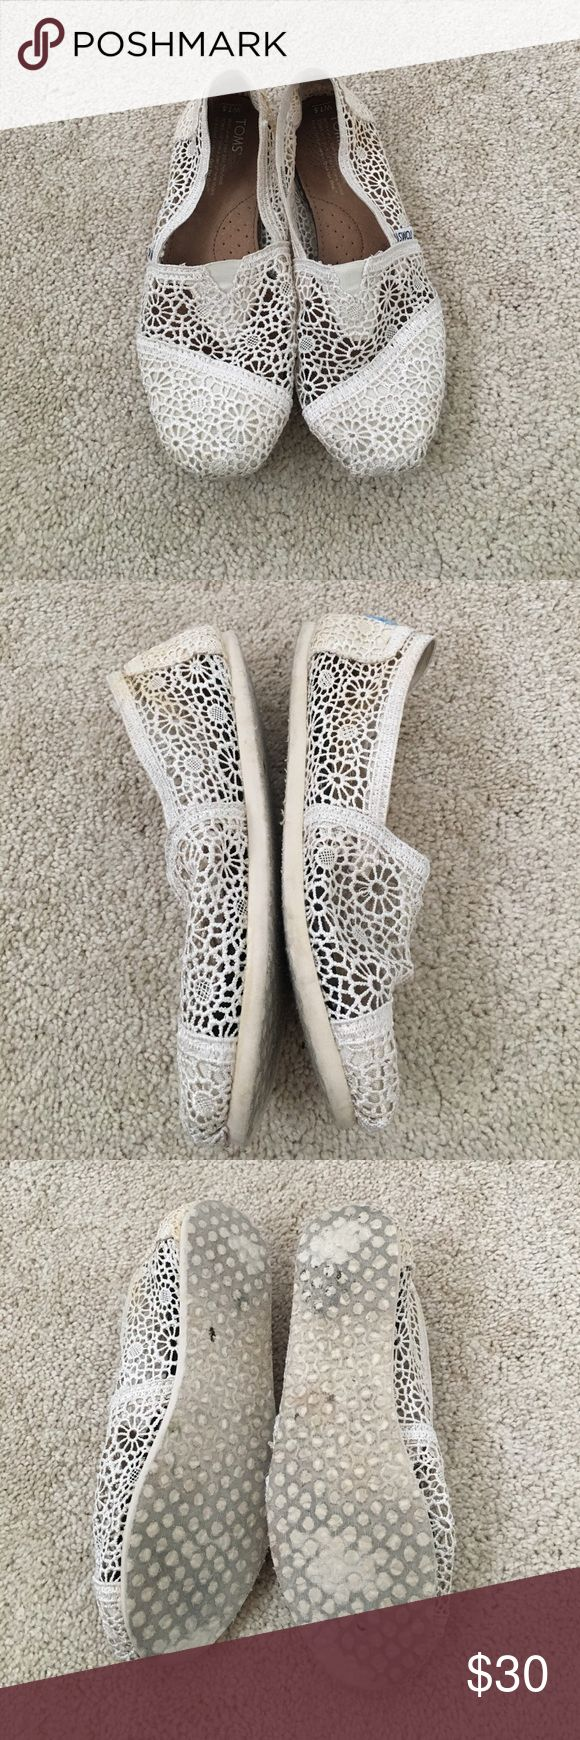 Crochet TOMS Cream colored worn a few times - crochet TOMS. TOMS Shoes Flats & Loafers